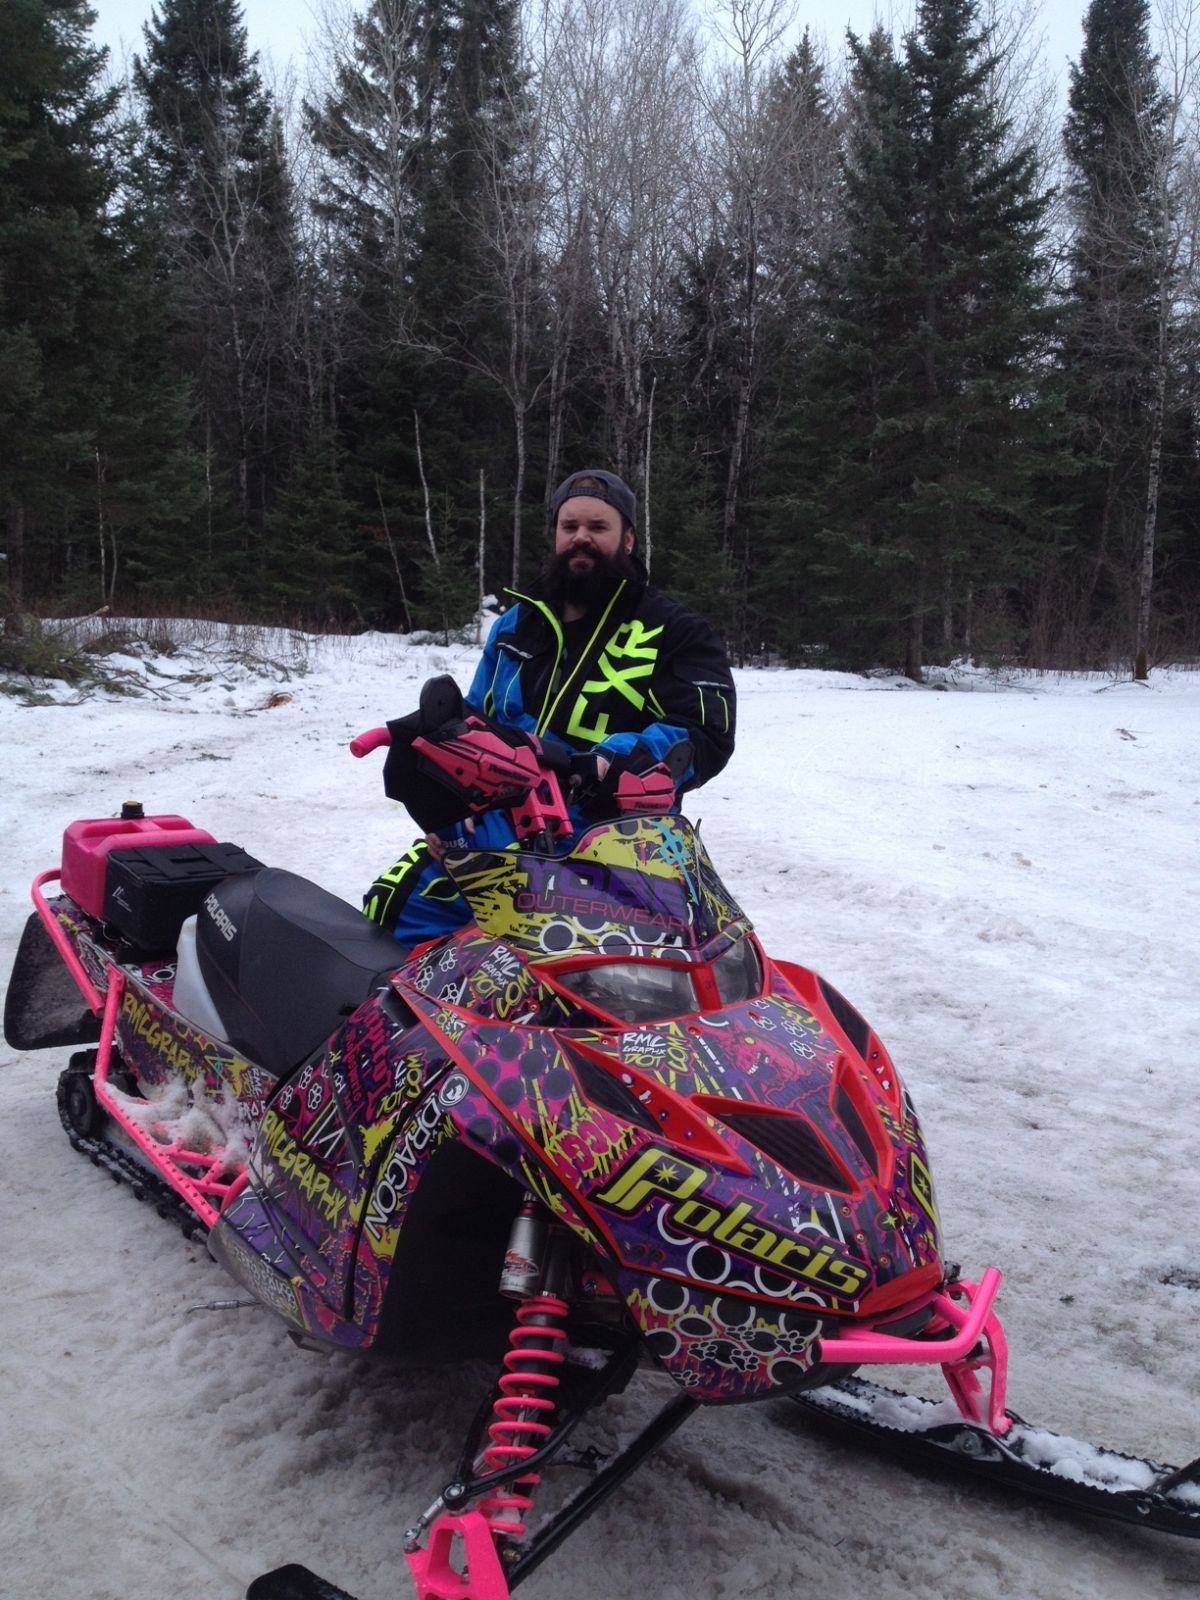 When your wife's sled is way cooler than yours... you get a pic with it